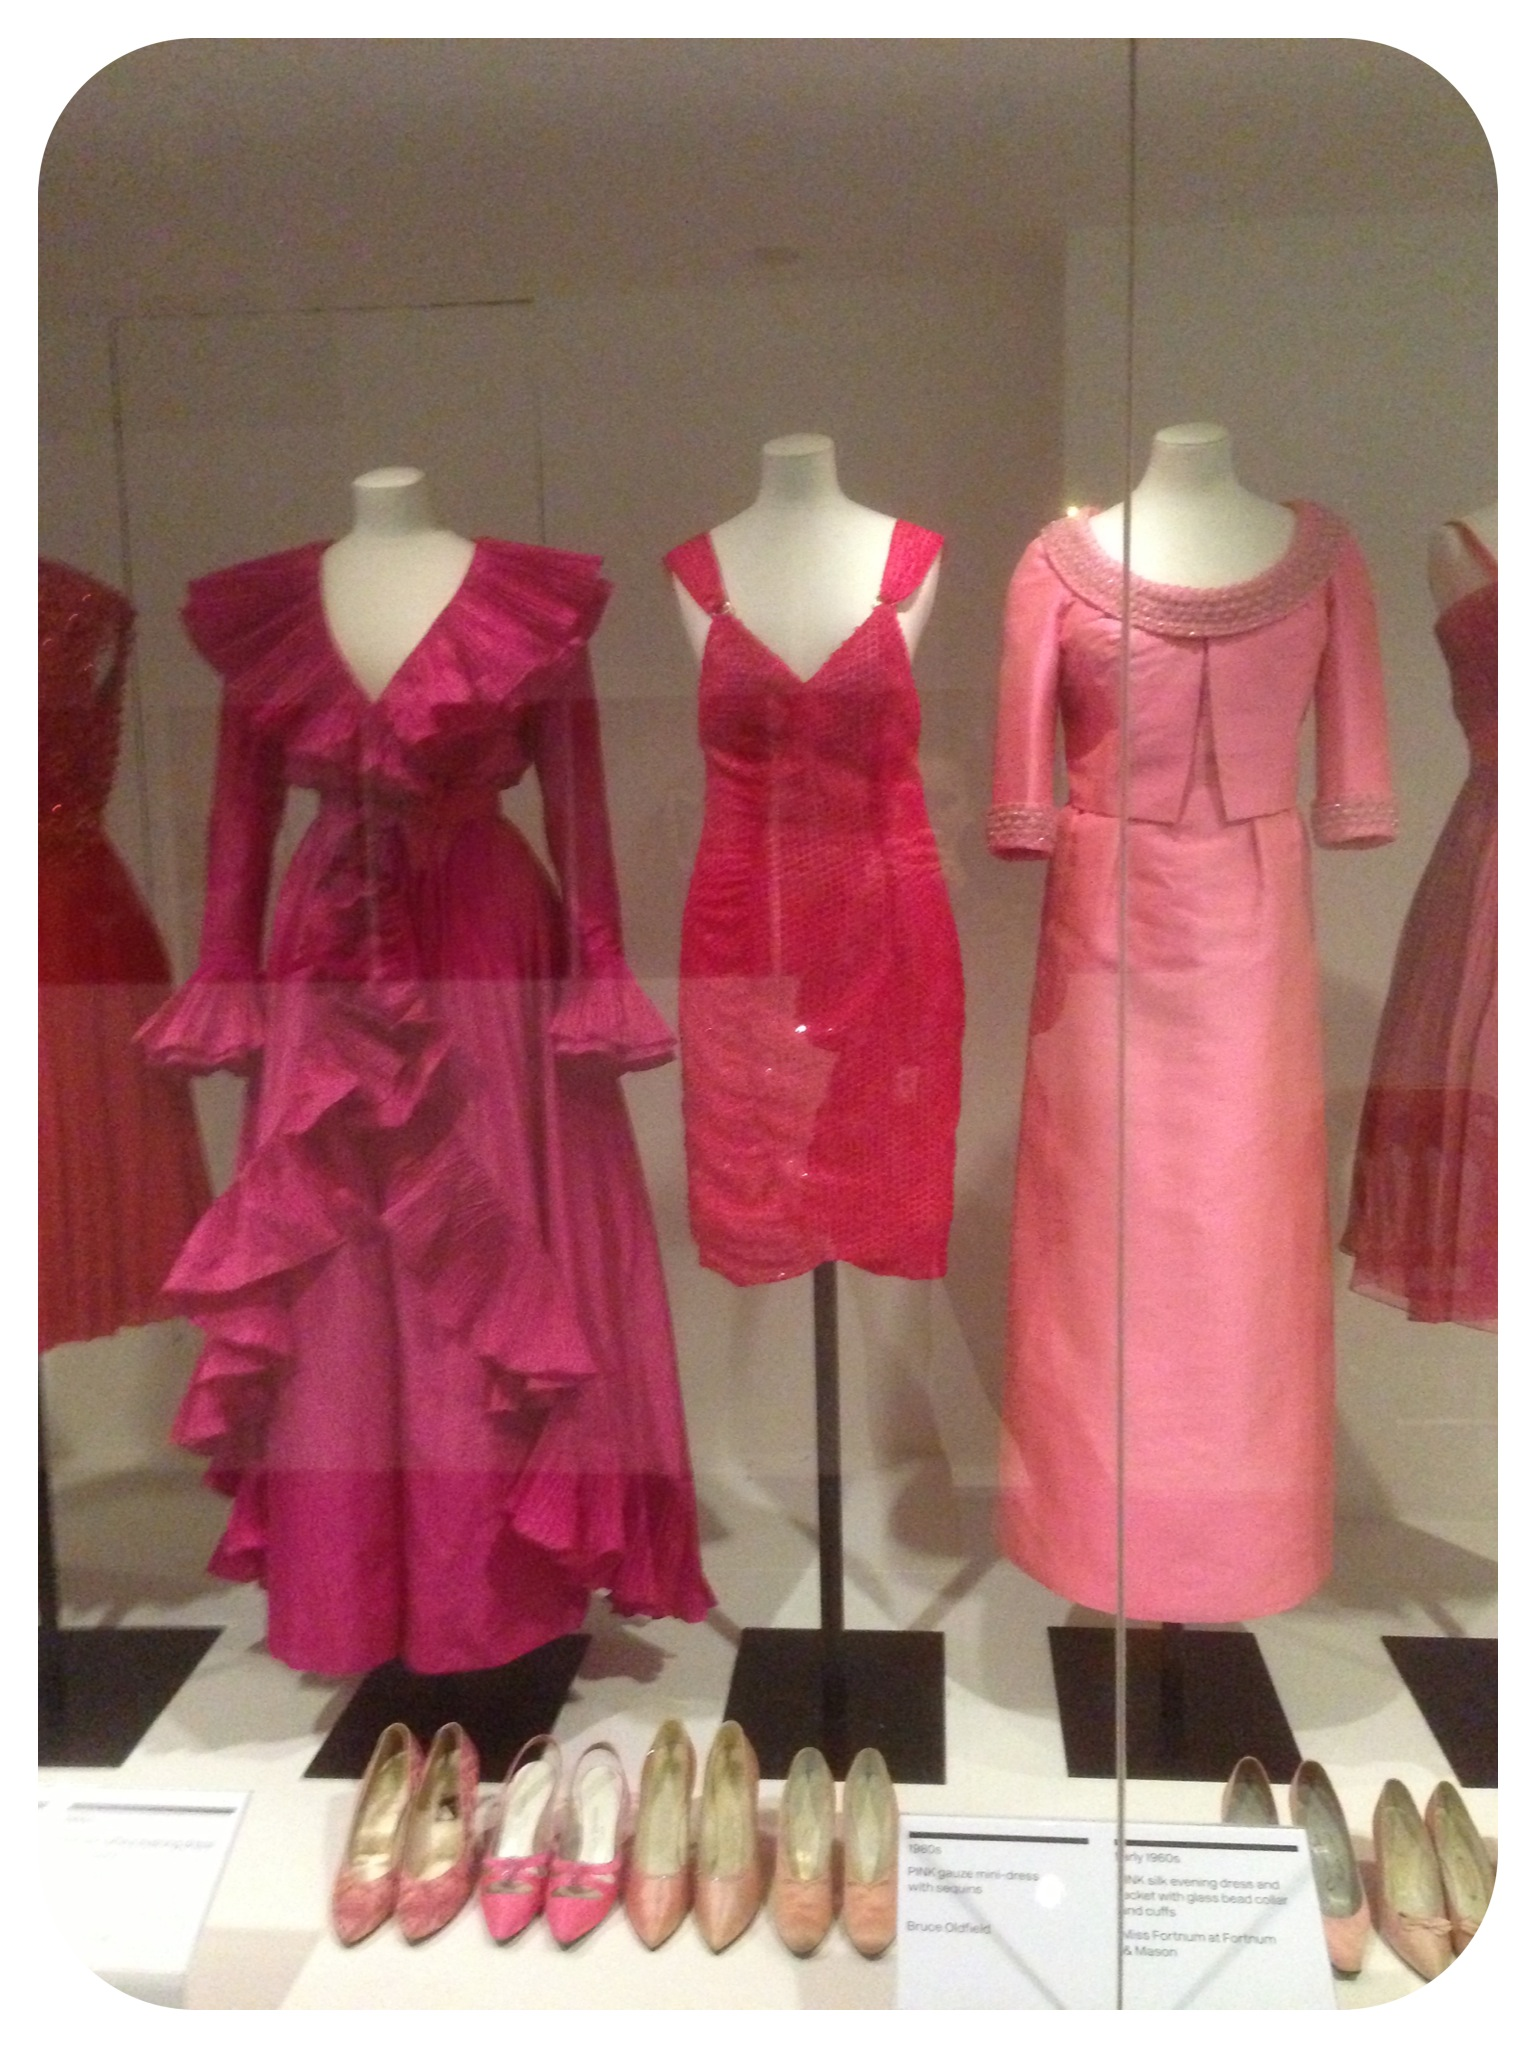 Glamour - Fashion Museum Bath